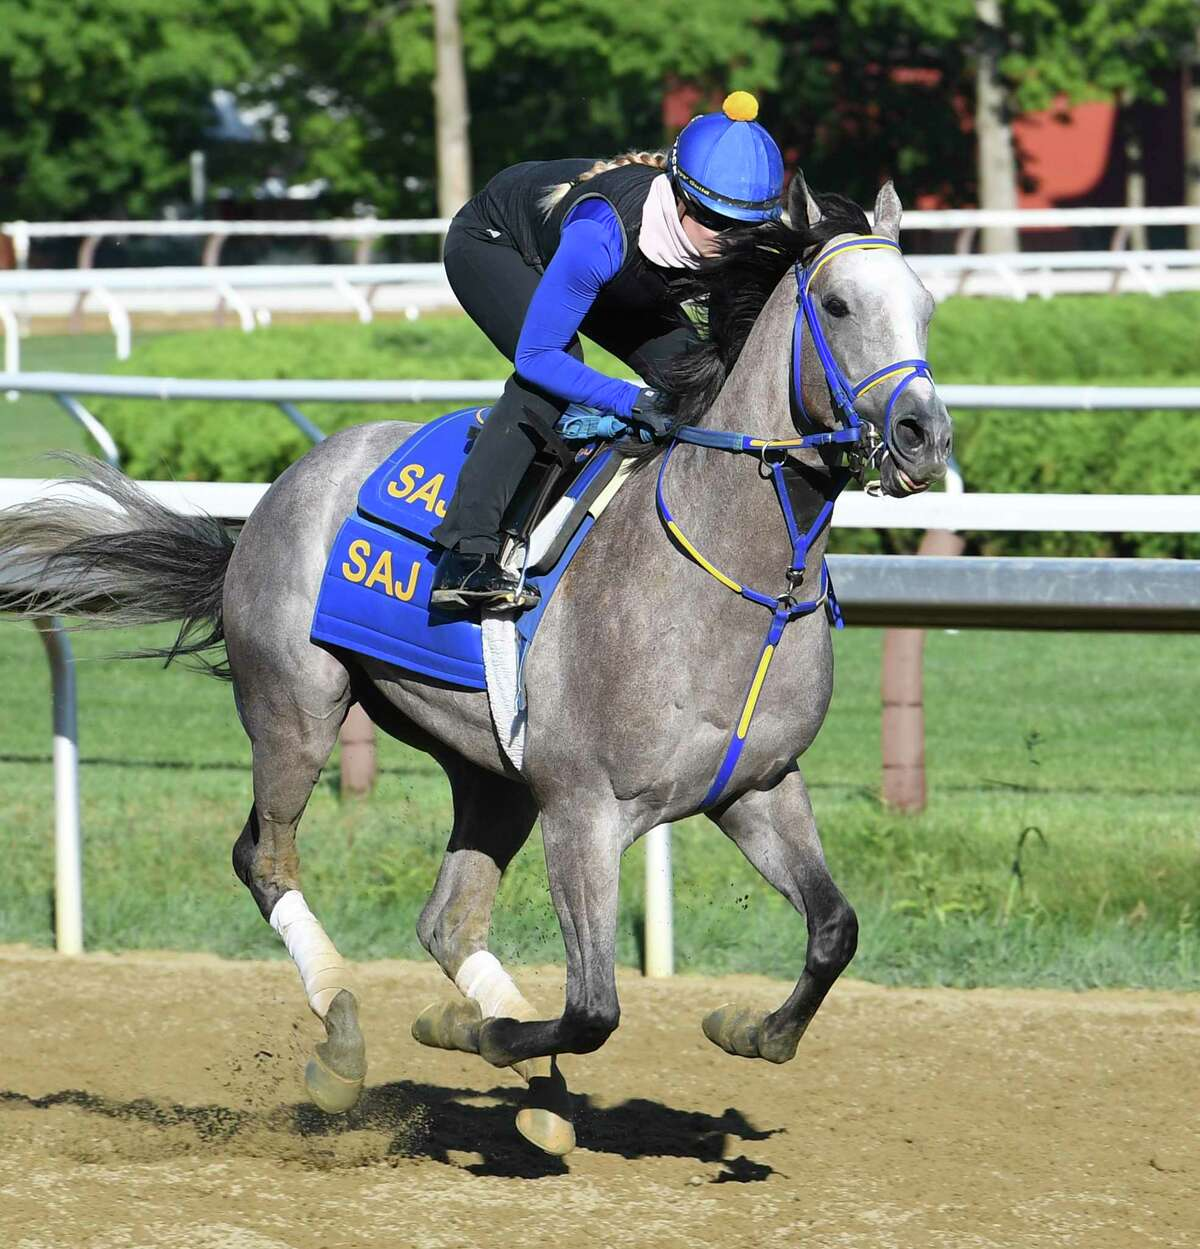 Exercise rider Sabine Lanvad takes Kentucky Derby hopeful NY Traffic for a gallop around the main track Wednesday Aug.26, 2020 at the Saratoga Race Course in Saratoga Springs, N.Y. Photo by Skip Dickstein/Special to the Times Union